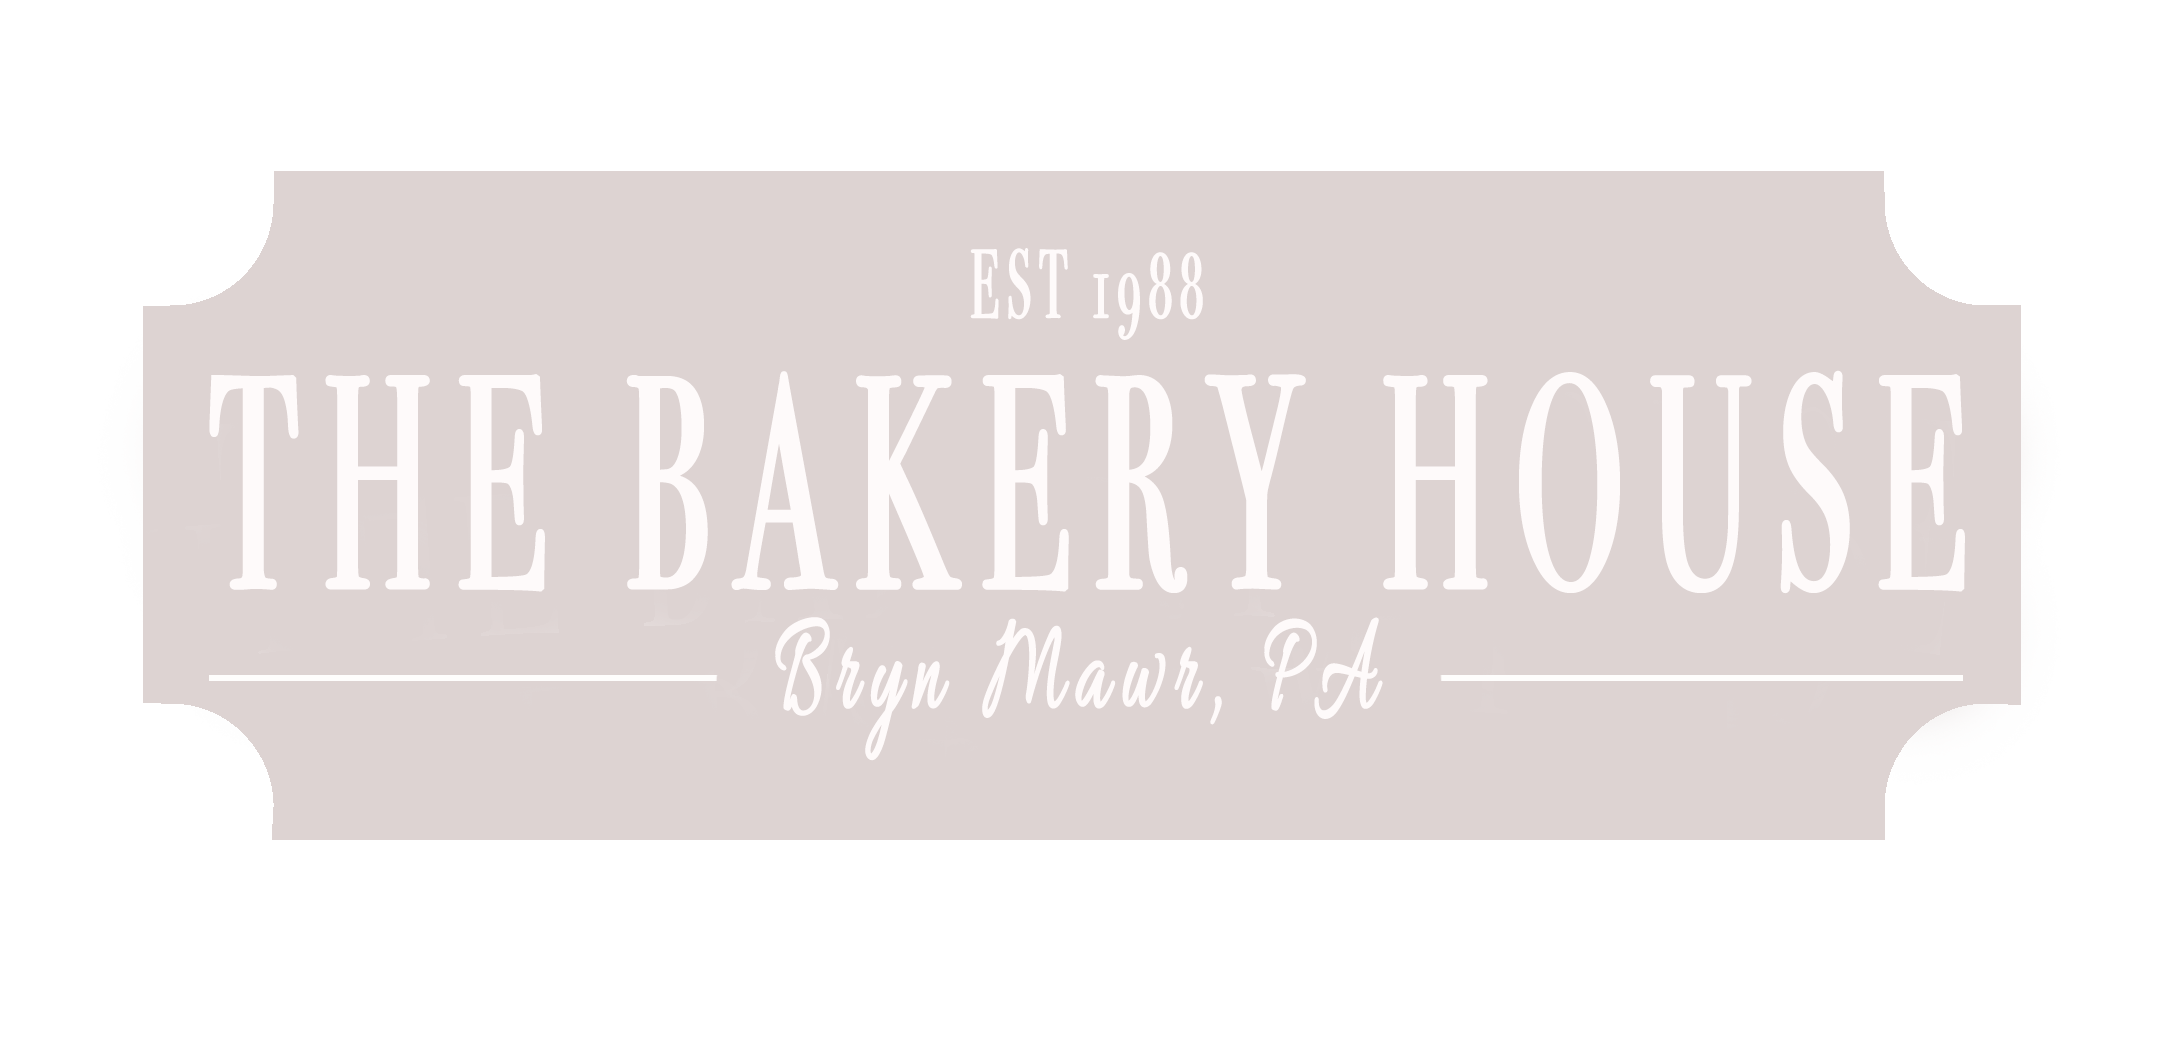 The Bakery House